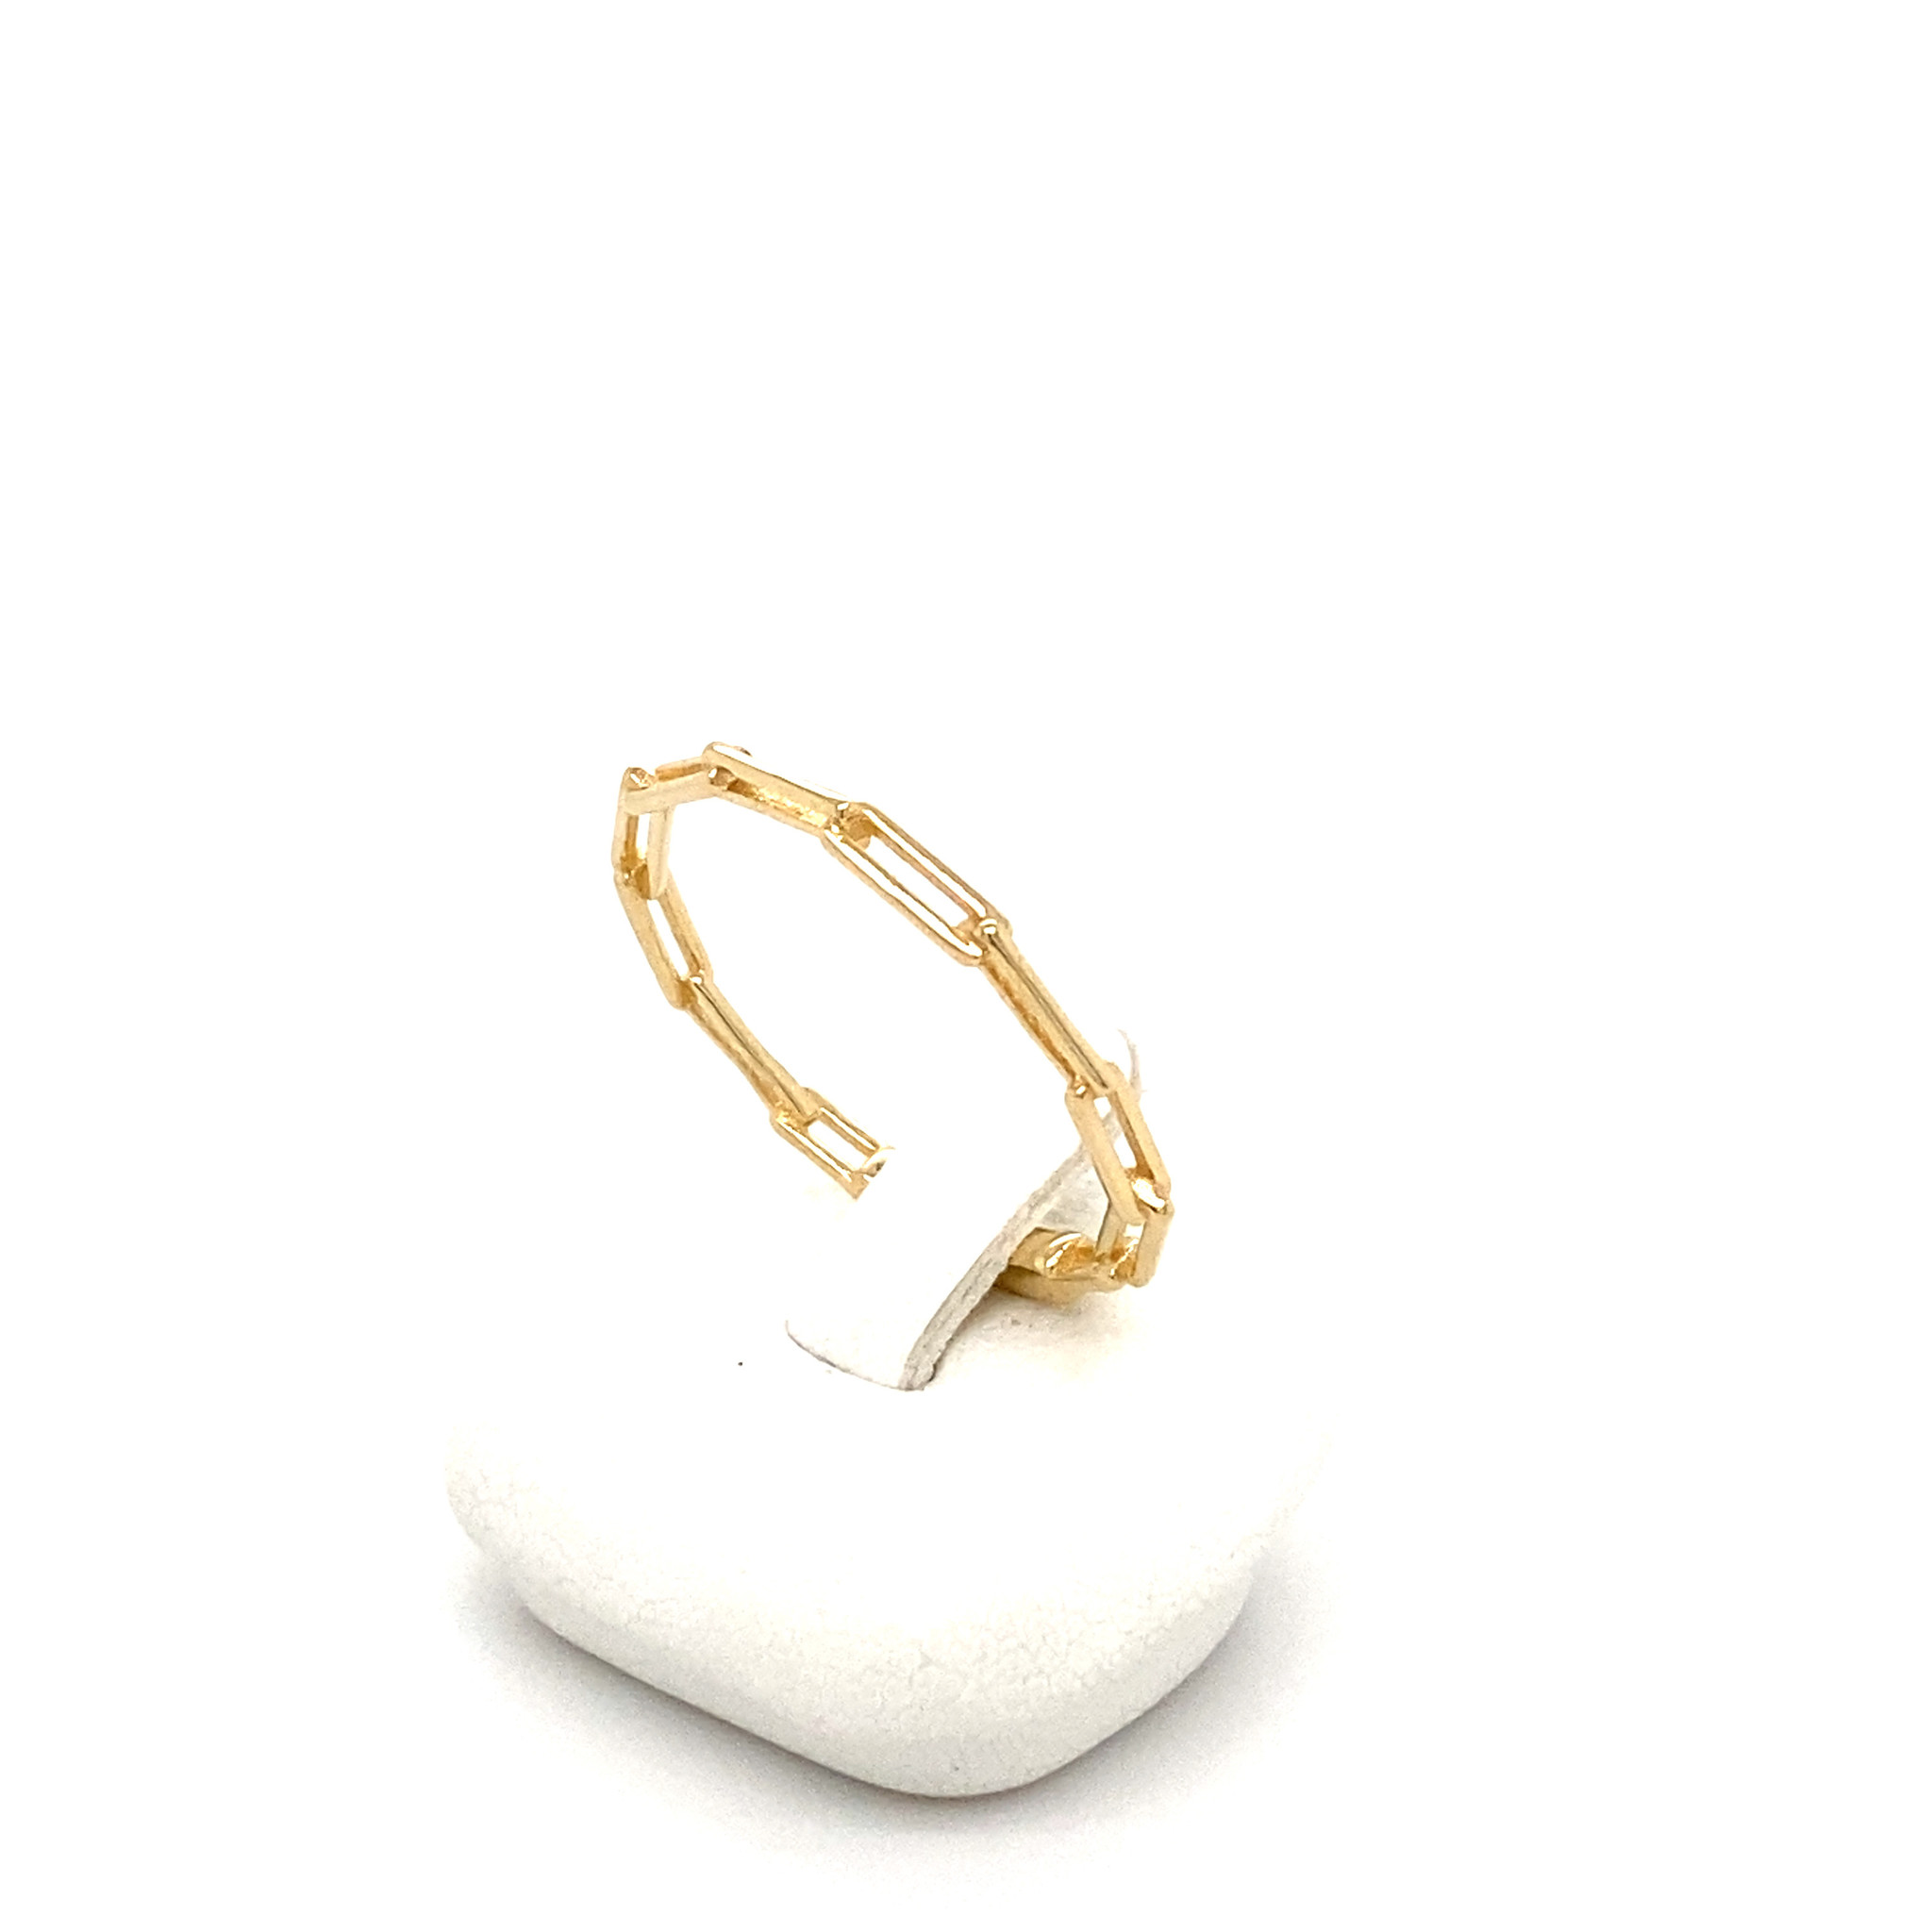 Private Label CvdK Private Label CvdK gouden ring